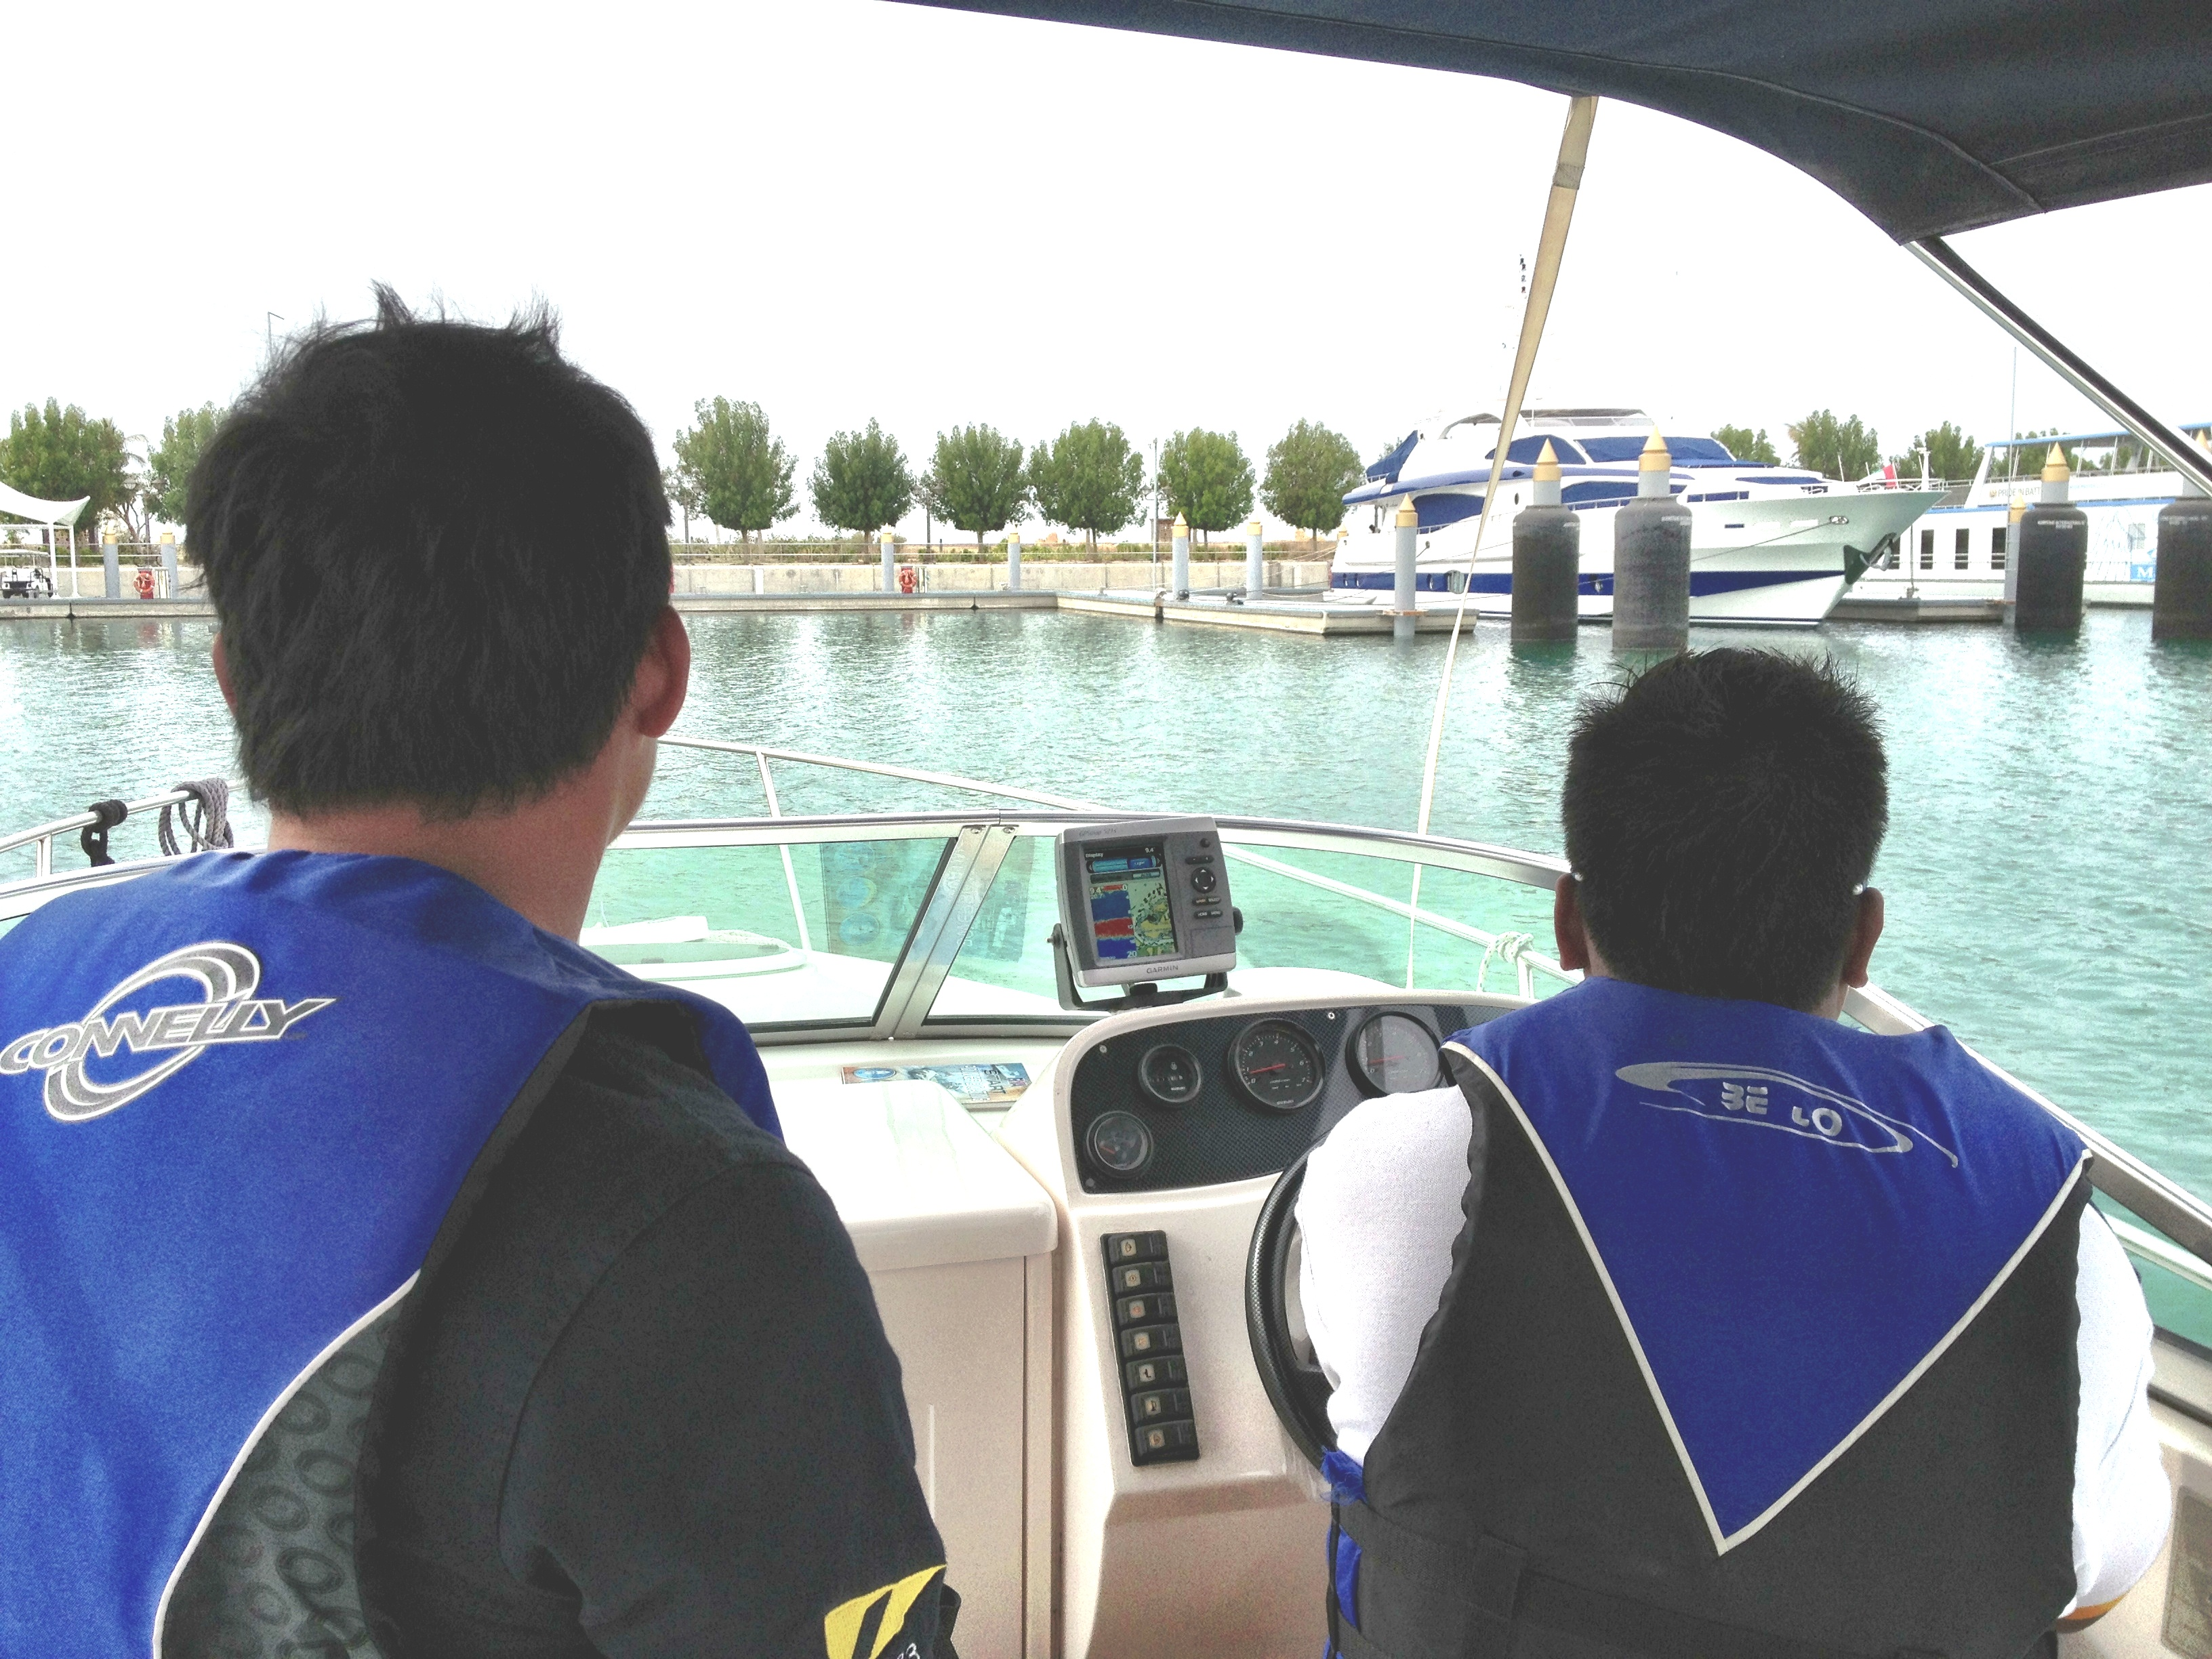 RYA Powerboat Level 2 Course - National Powerboat Certificate